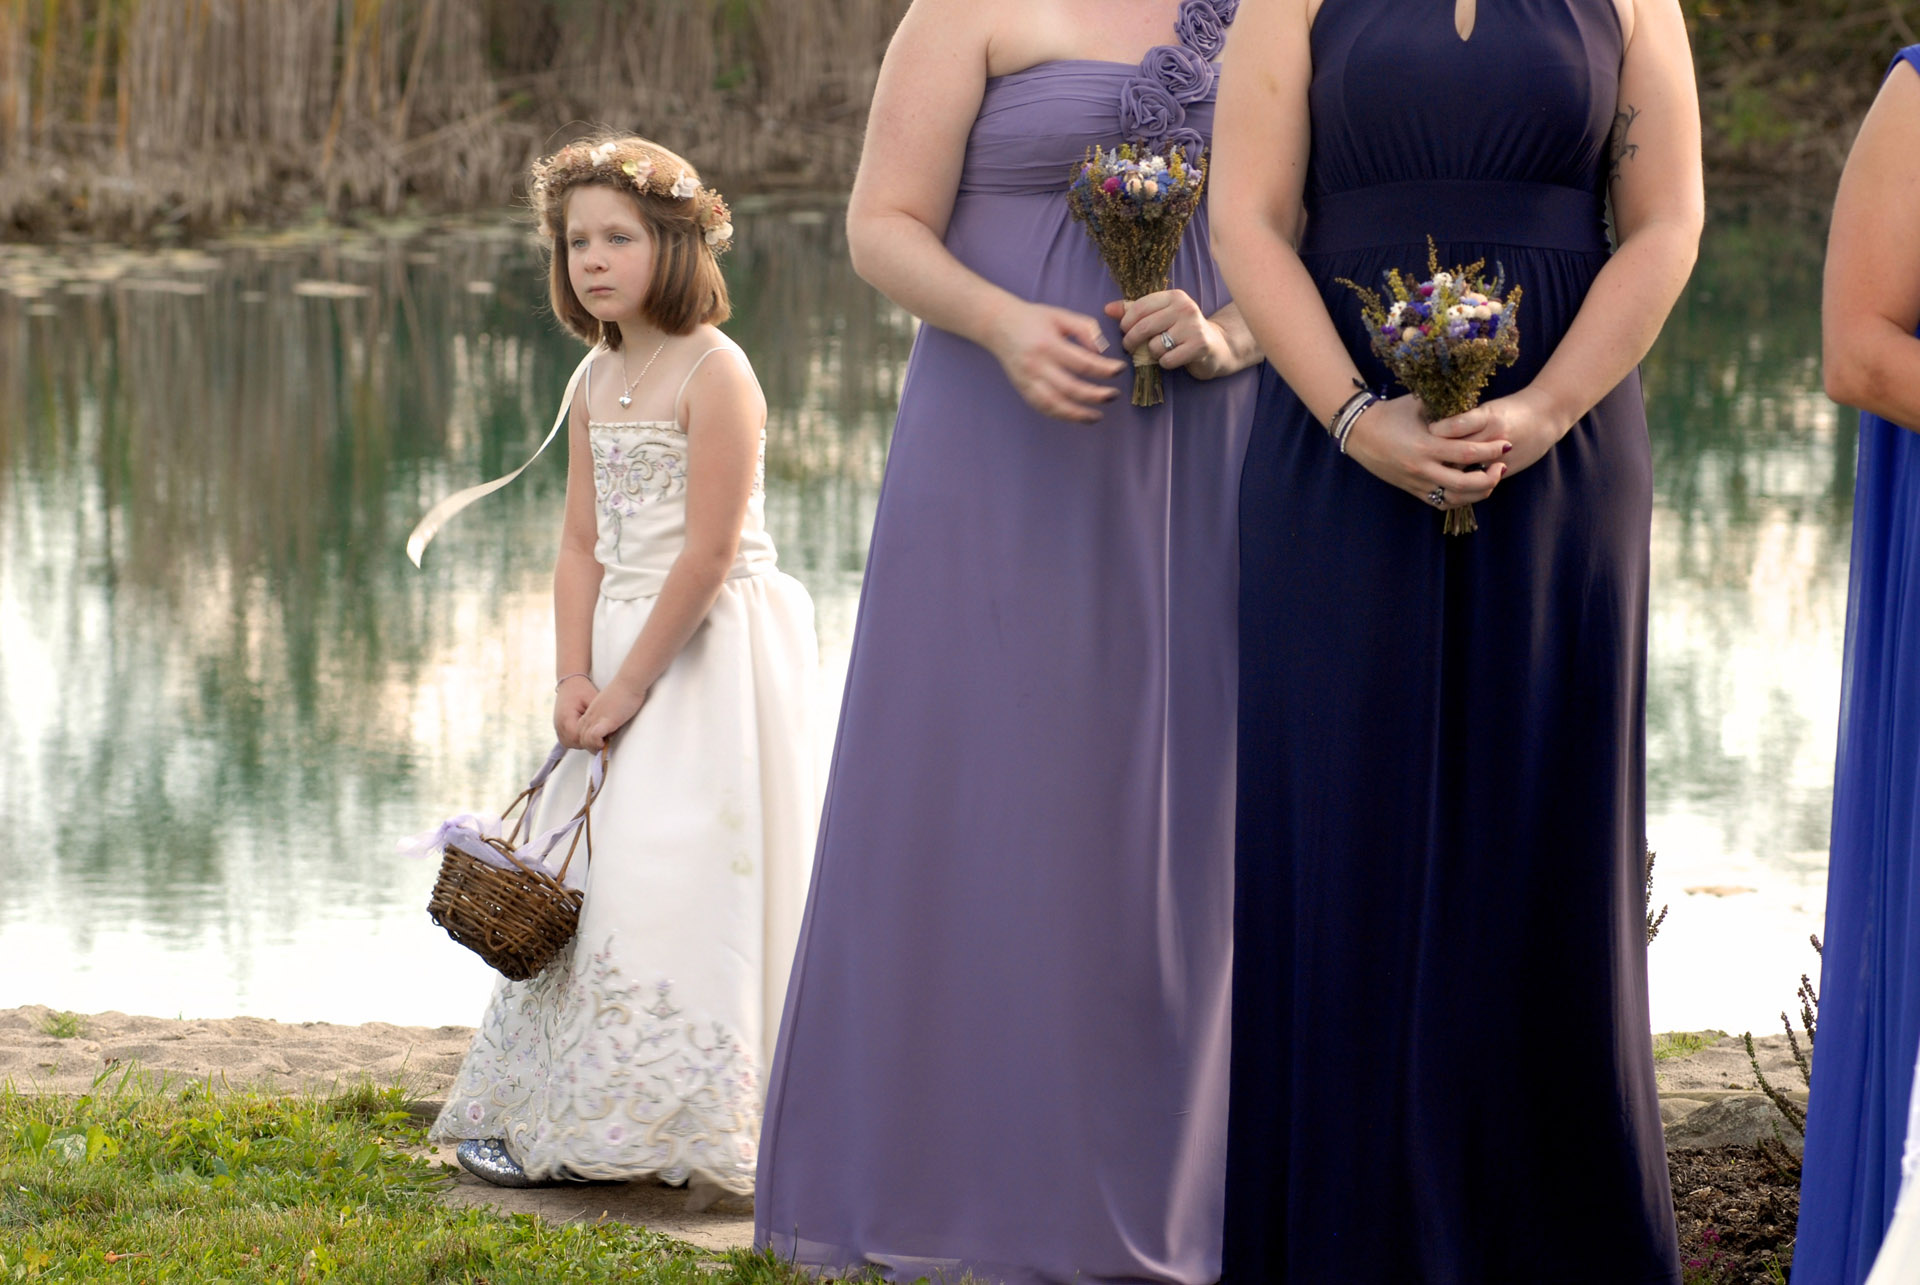 Best Michigan backyard wedding photography features photojournalist photos of a bored flower girl no longer interested in the wedding ceremony in metro Detroit, Michigan featuring their lovely backyard garden wedding in fall.